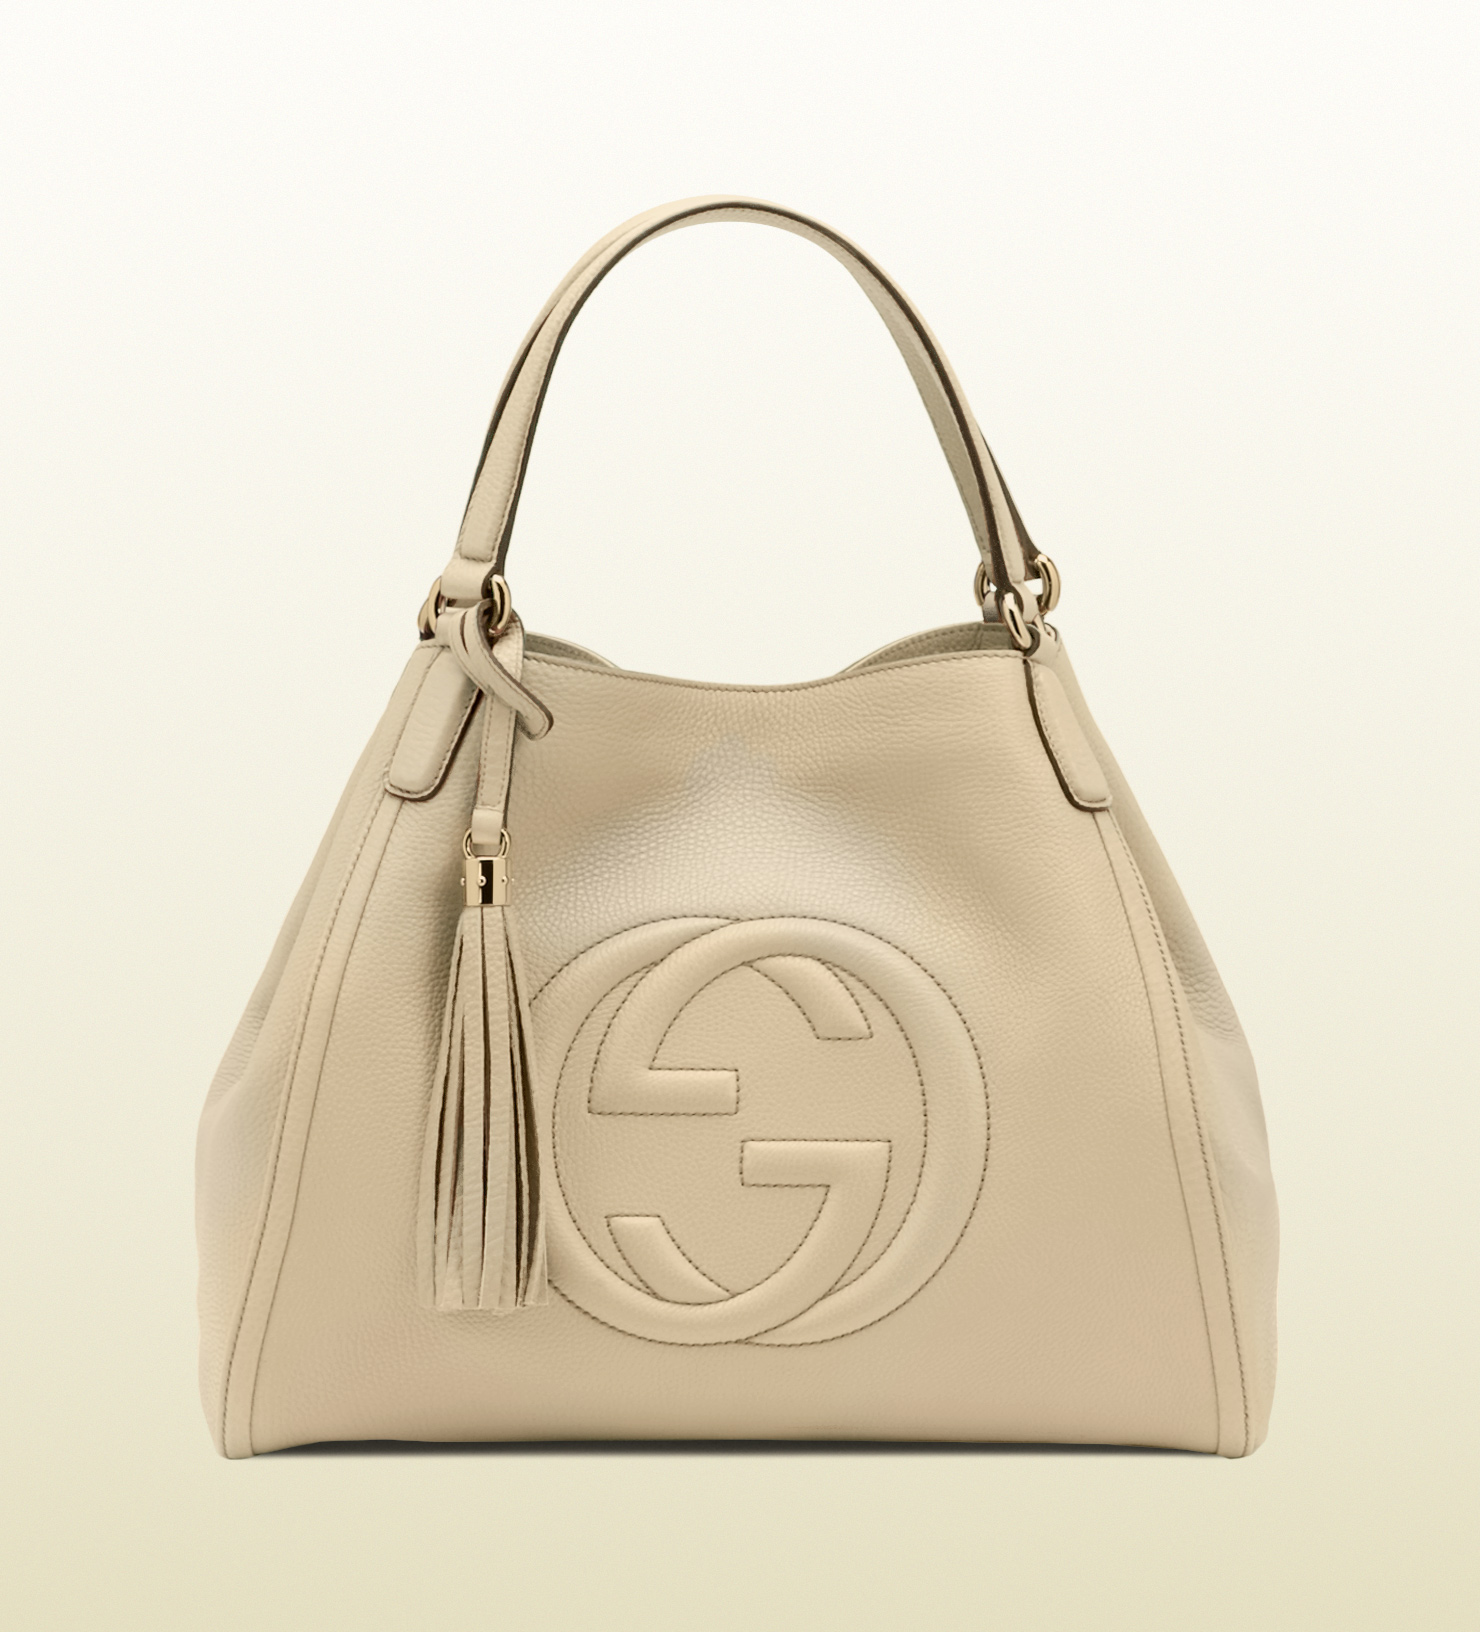 Gucci Soho Cream Leather Shoulder Bag in White - Lyst ae271a622fc29